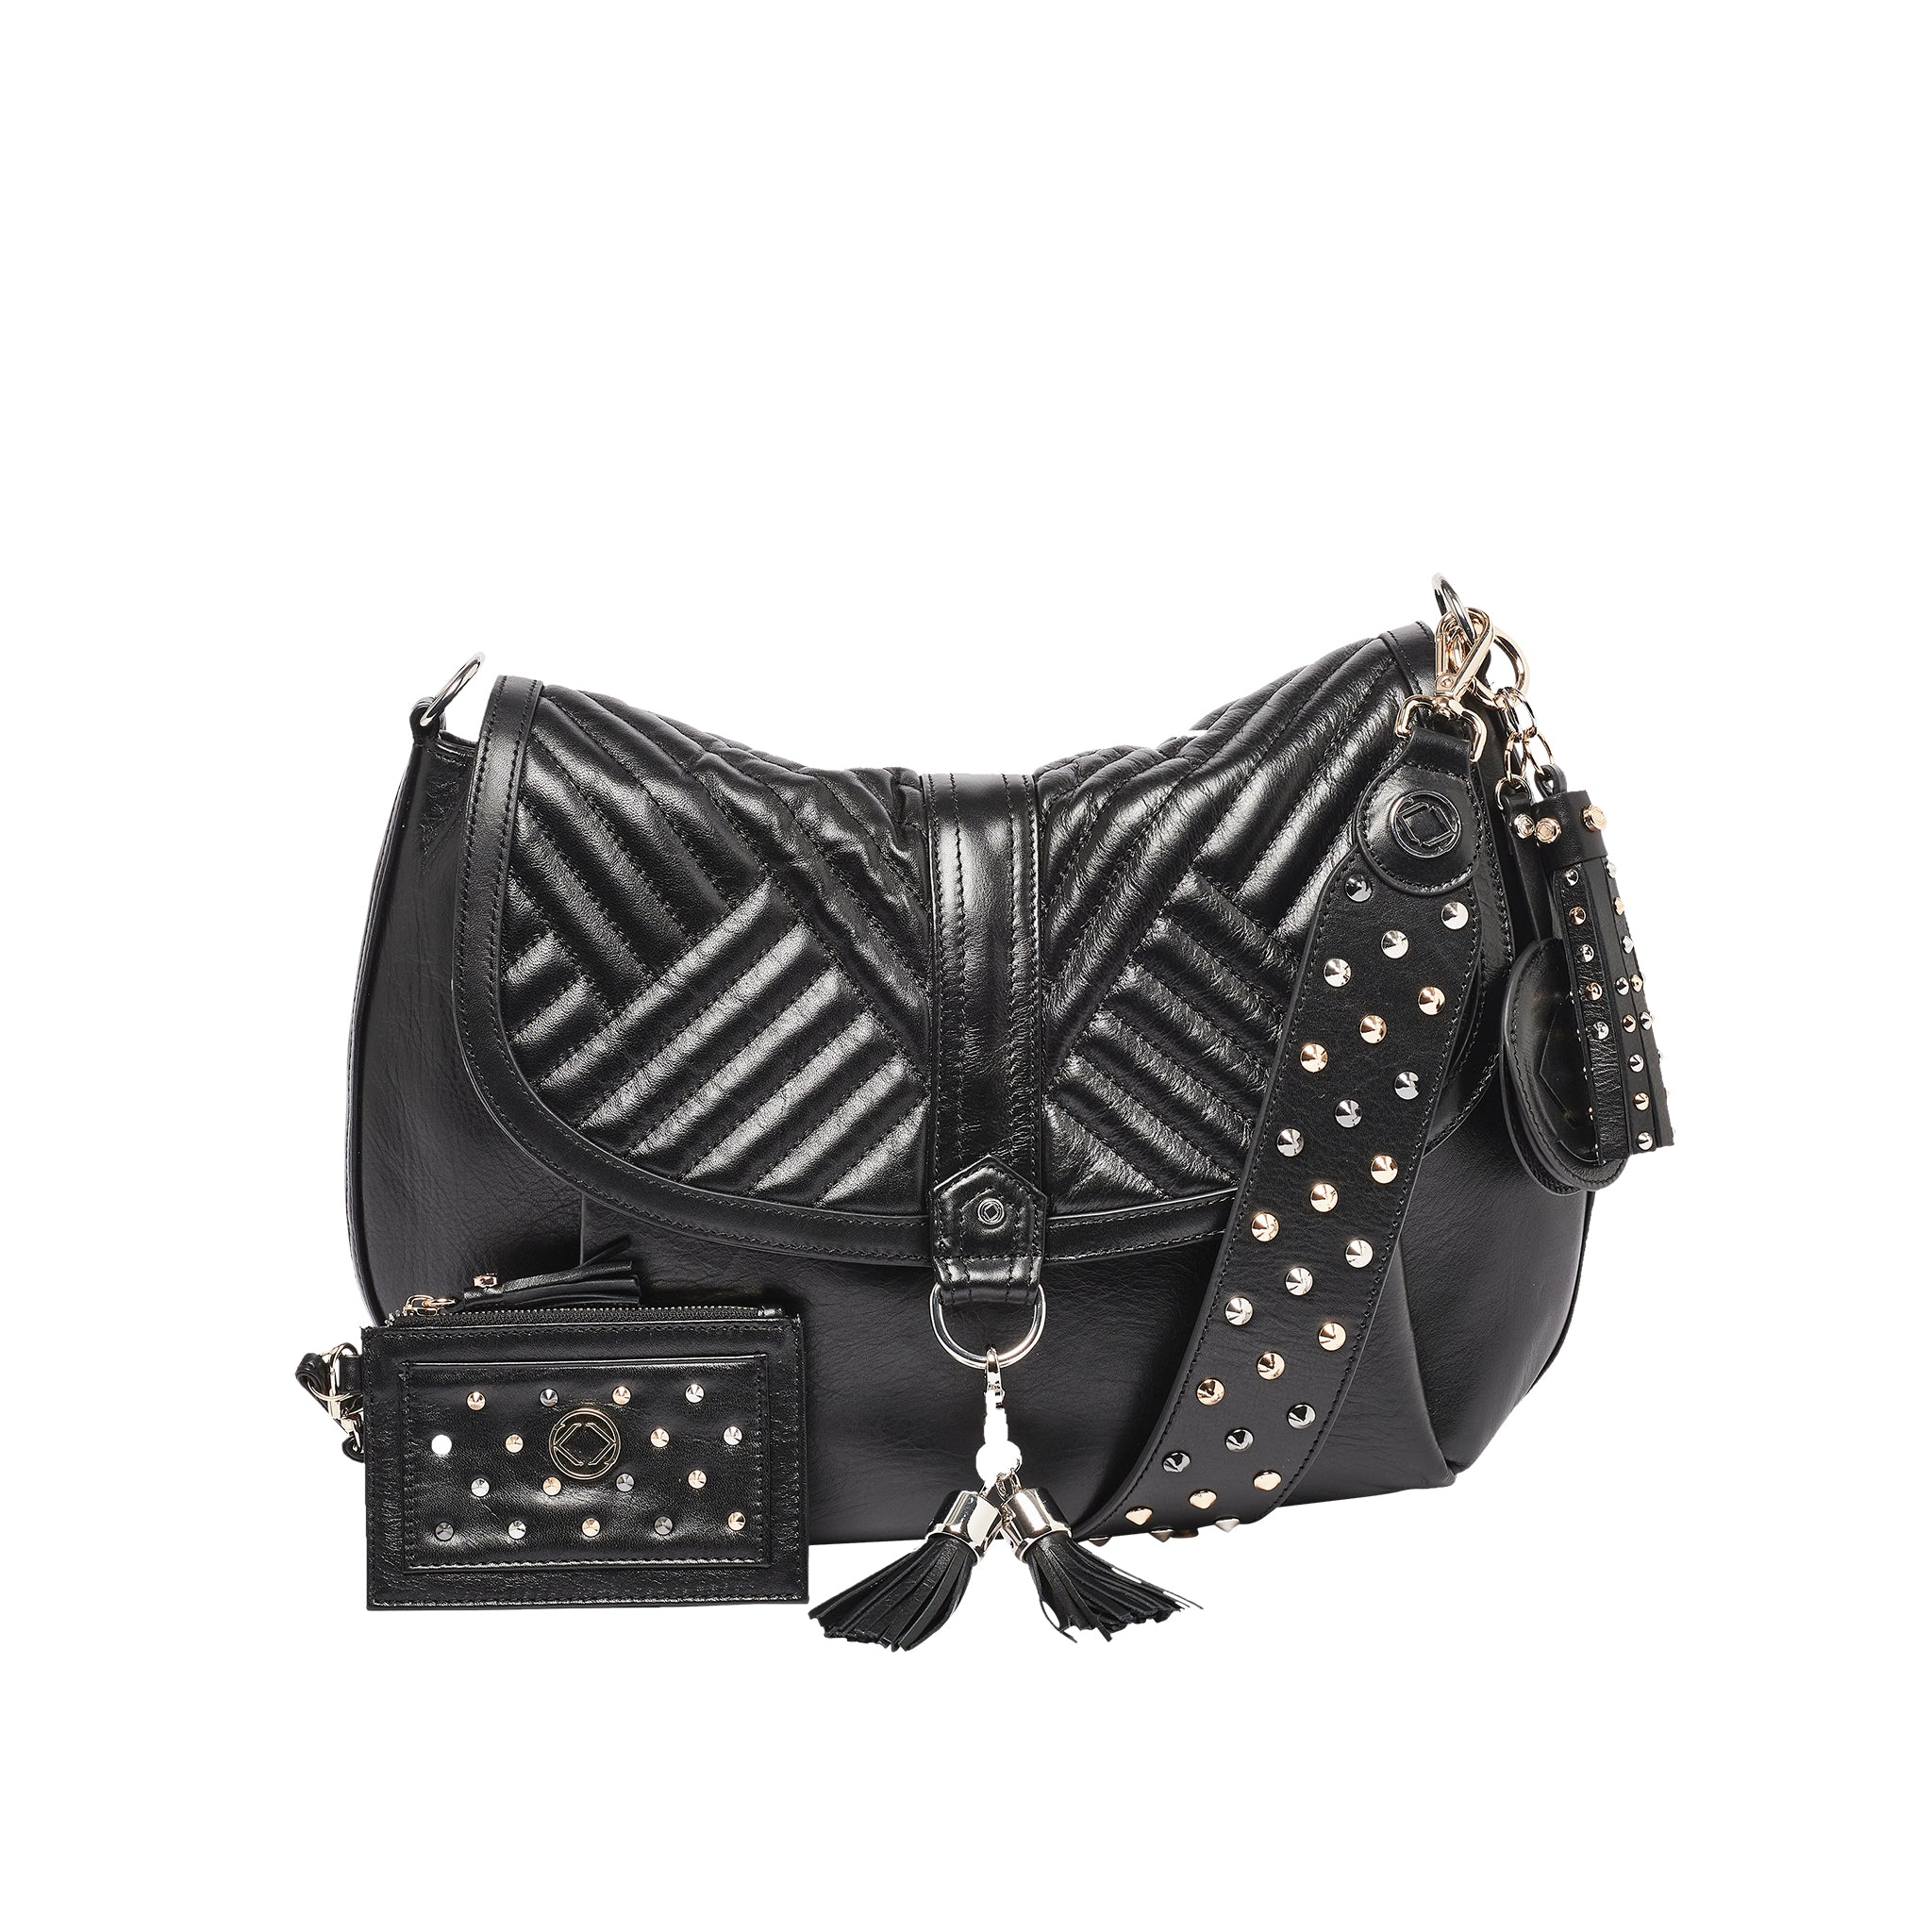 Luxury designer Jones quilted black leather organiser crossbody changing bag with our luxurious Stevie studded strap